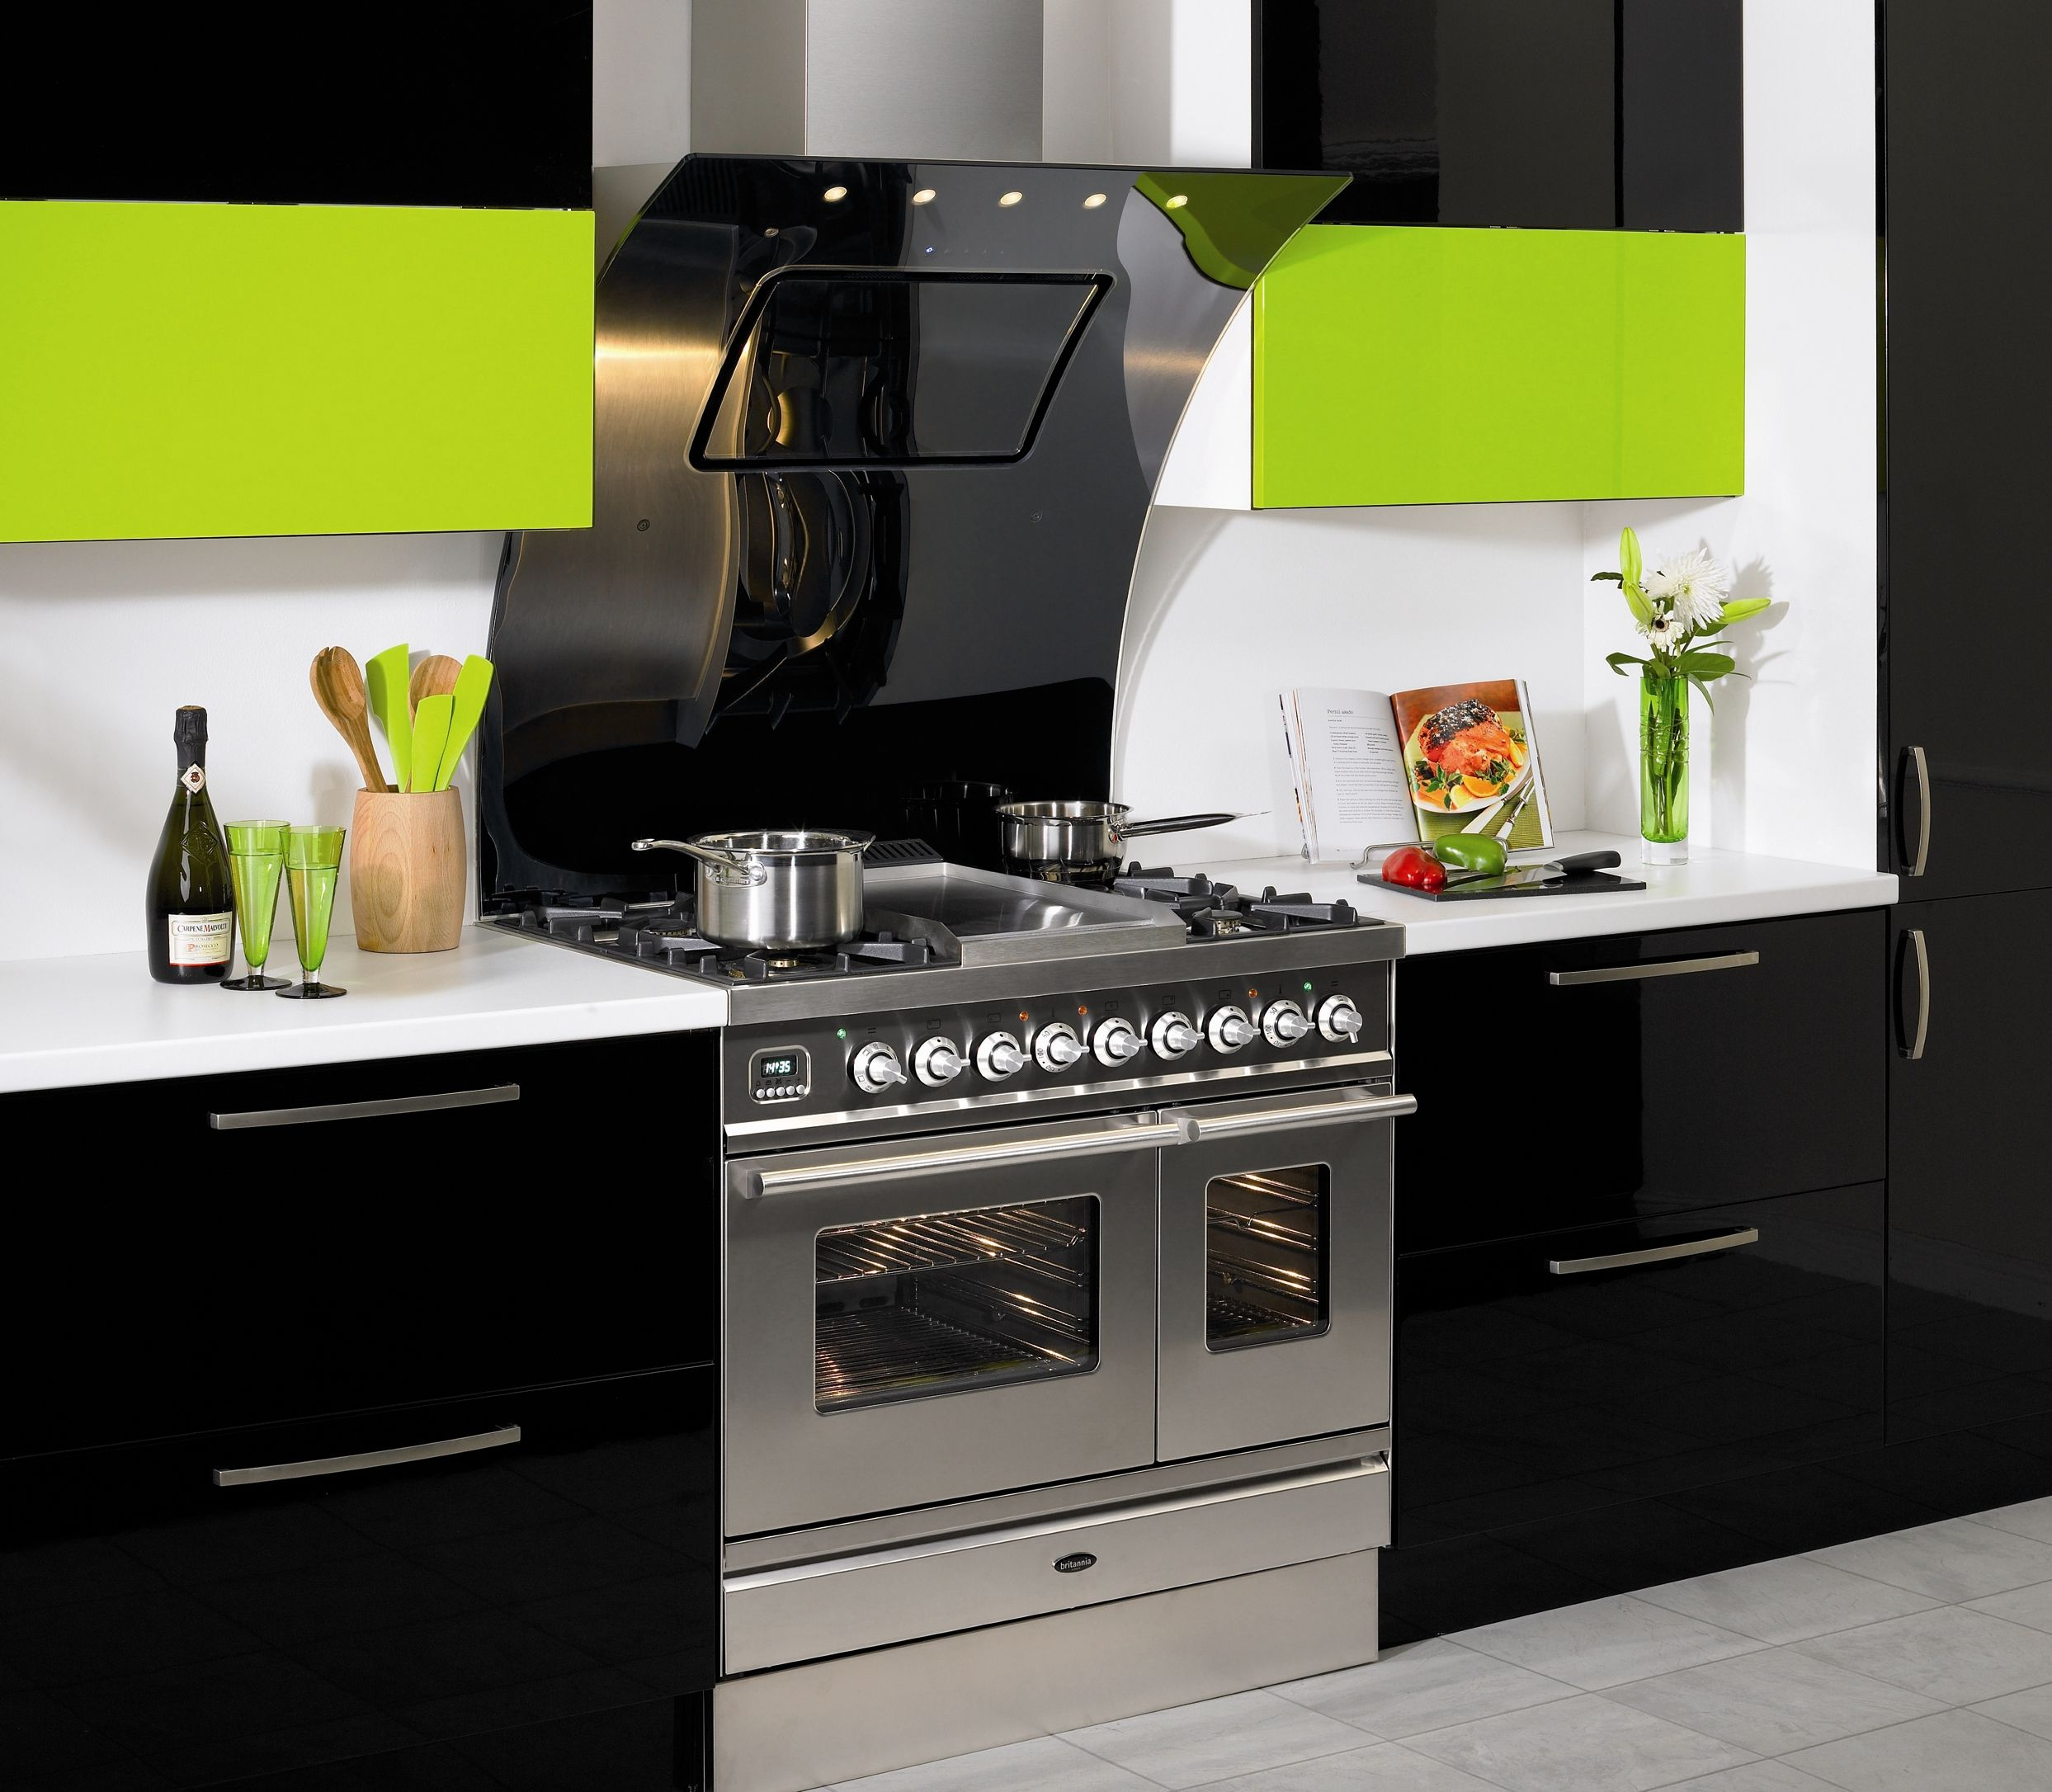 Fabulous Latest Trends In Kitchen Design With Contemporary